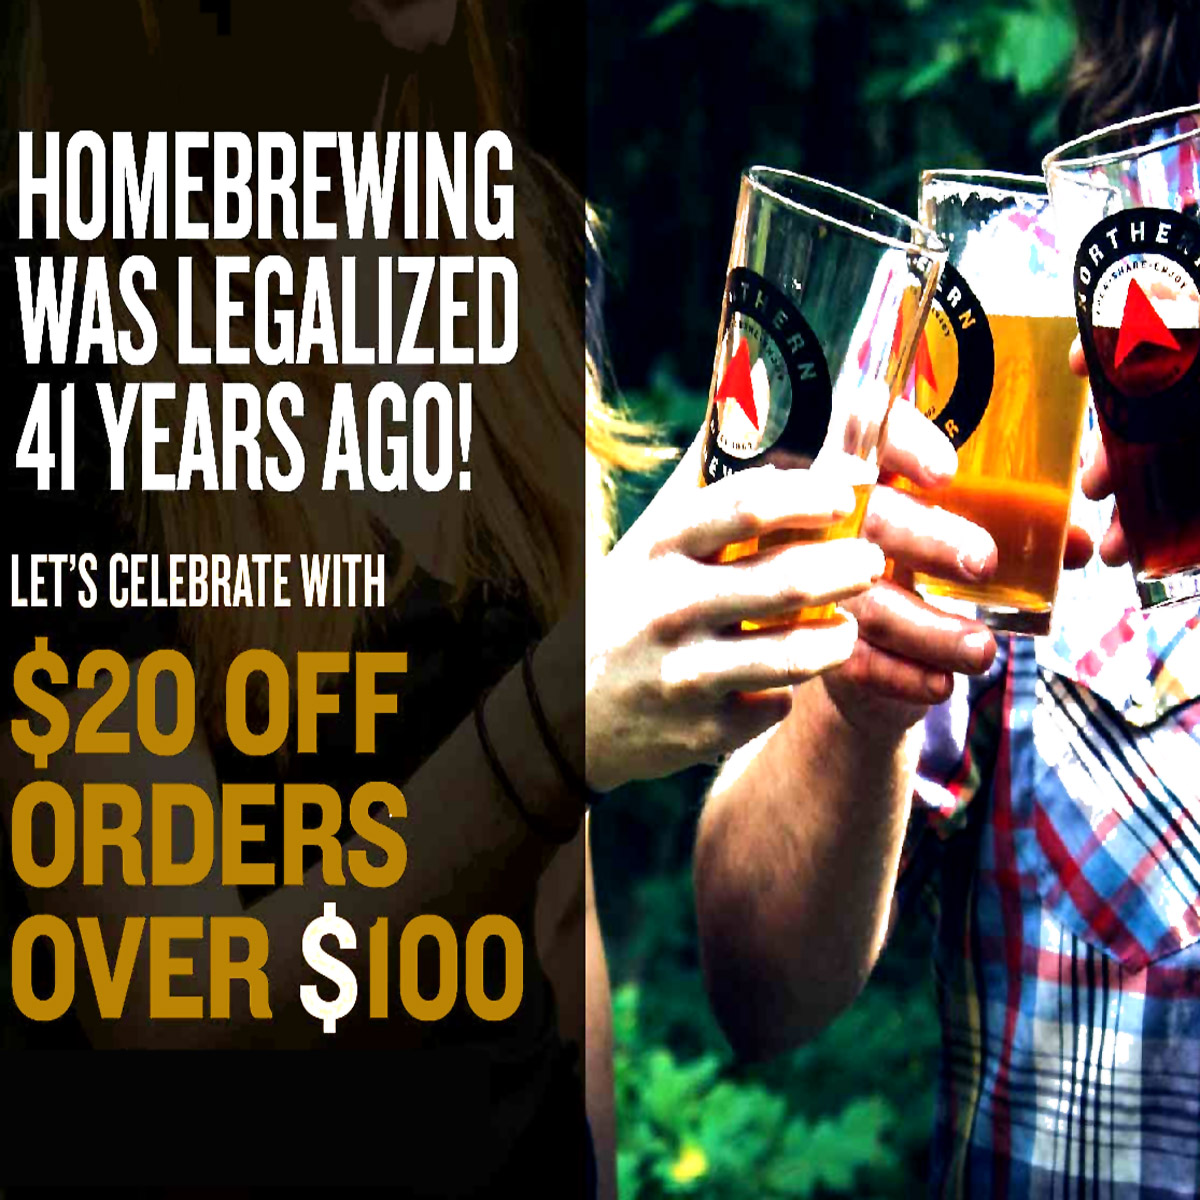 Home Wine Making Coupon Codes for Save $20 on a purchase at Northern Brewer with this NorthernBrewer.com Promo Code for October 2019 Coupon Code